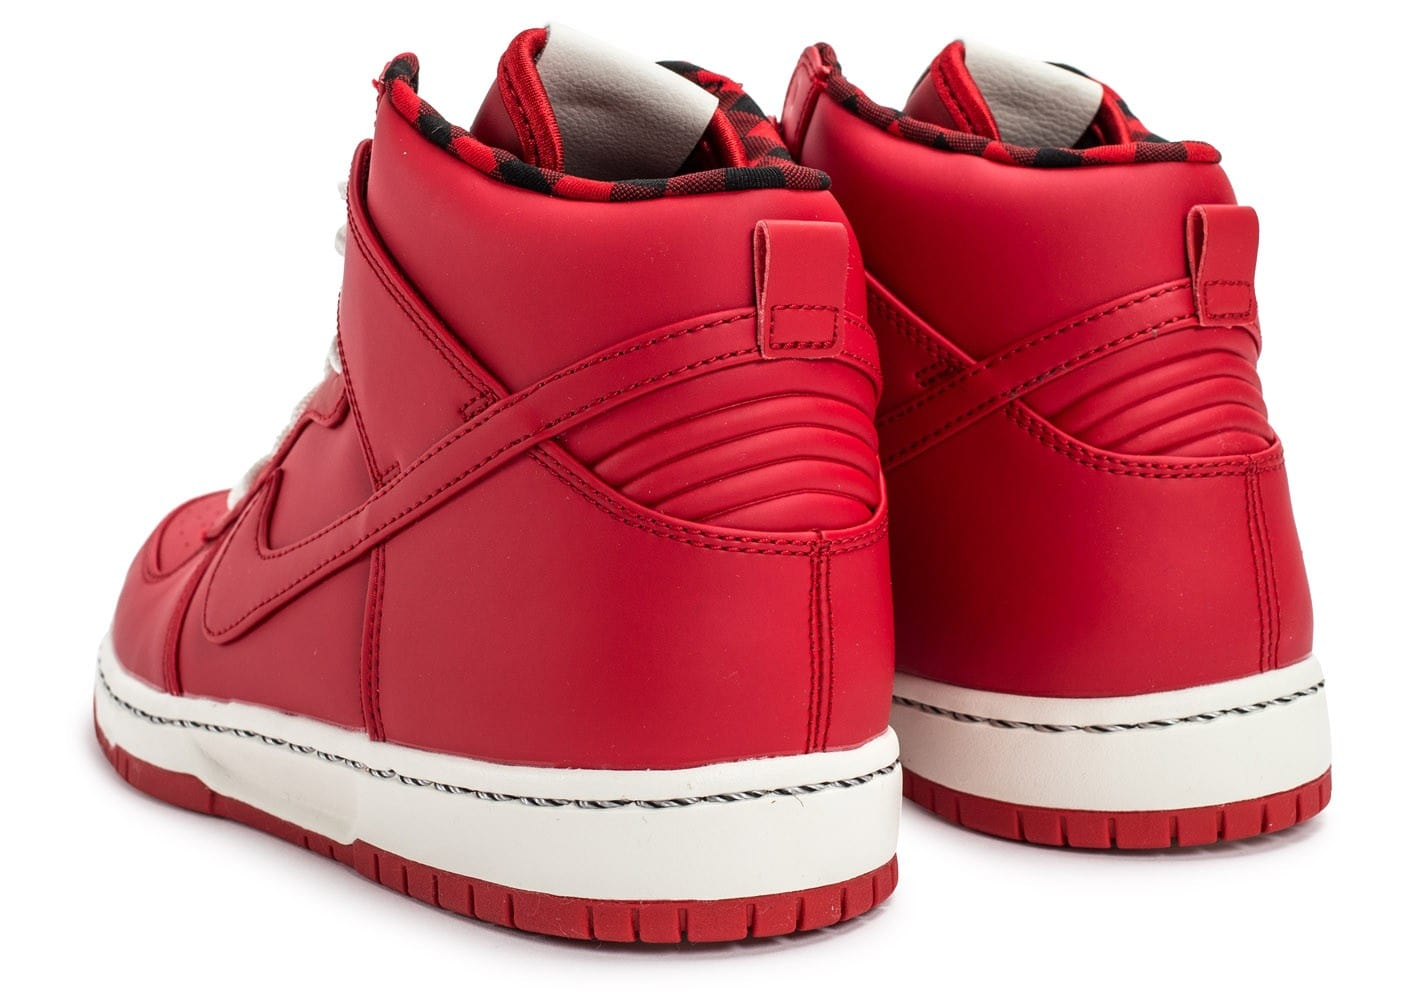 low priced 32970 2ad64 Chaussures Nike Dunk High Ultra Rain rouge vue dessous .